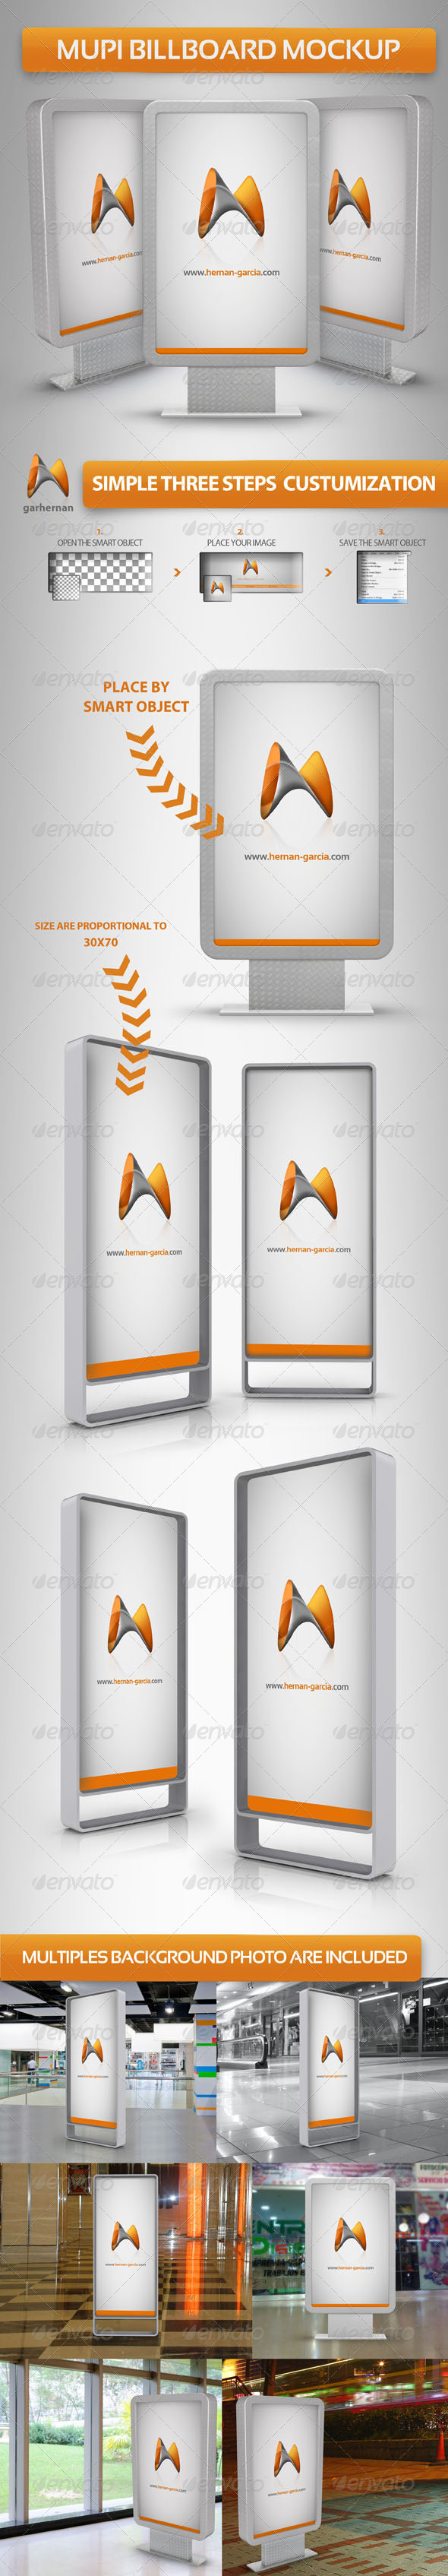 Mupi Billboard Mock-up